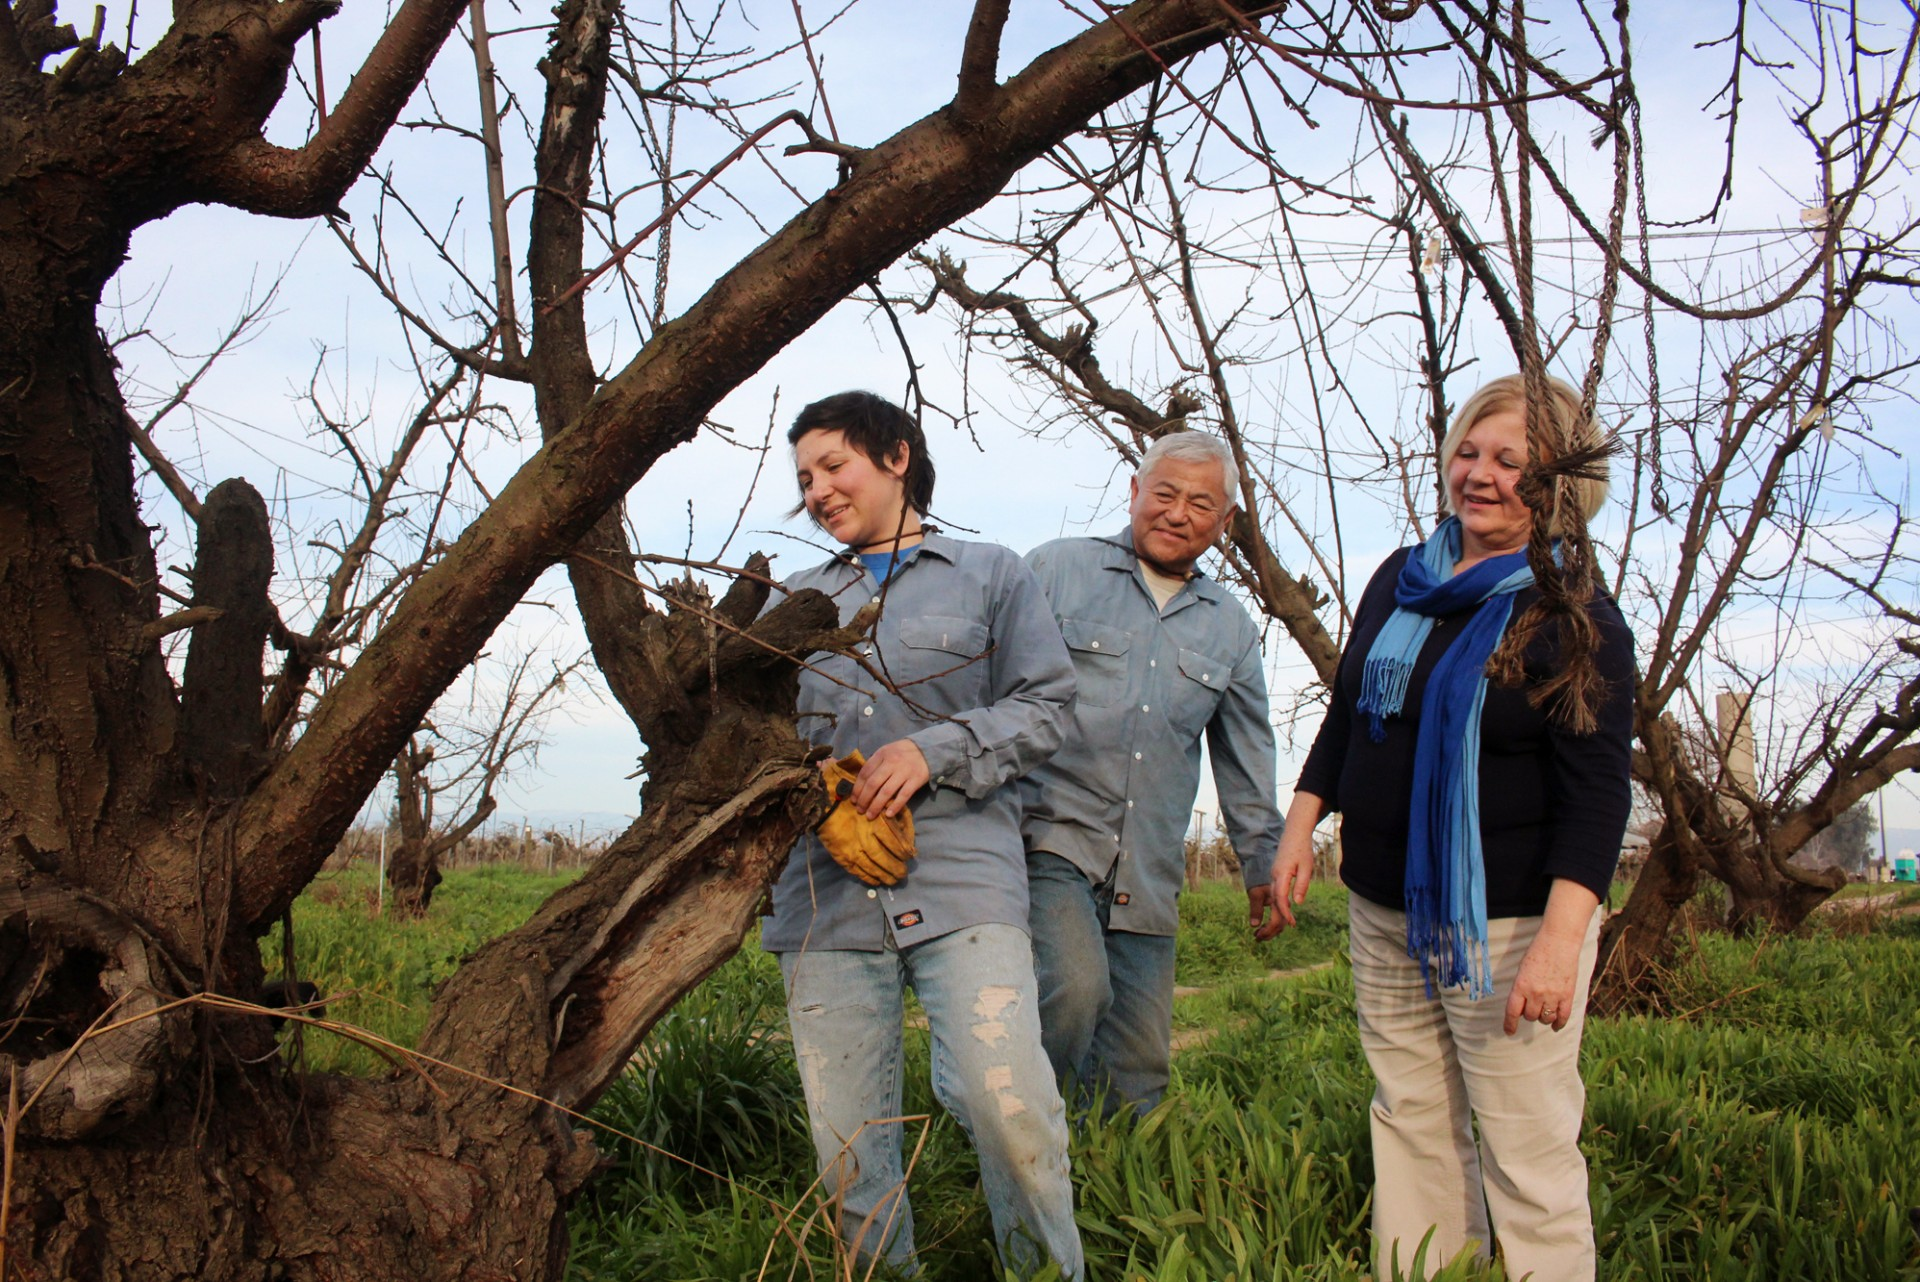 Nikiko Masumoto, her father, Mas, and her mother, Marcy, inspect one of the old Suncrest peach trees that Mas almost destroyed in 1987. Photo: Dan Charles/NPR